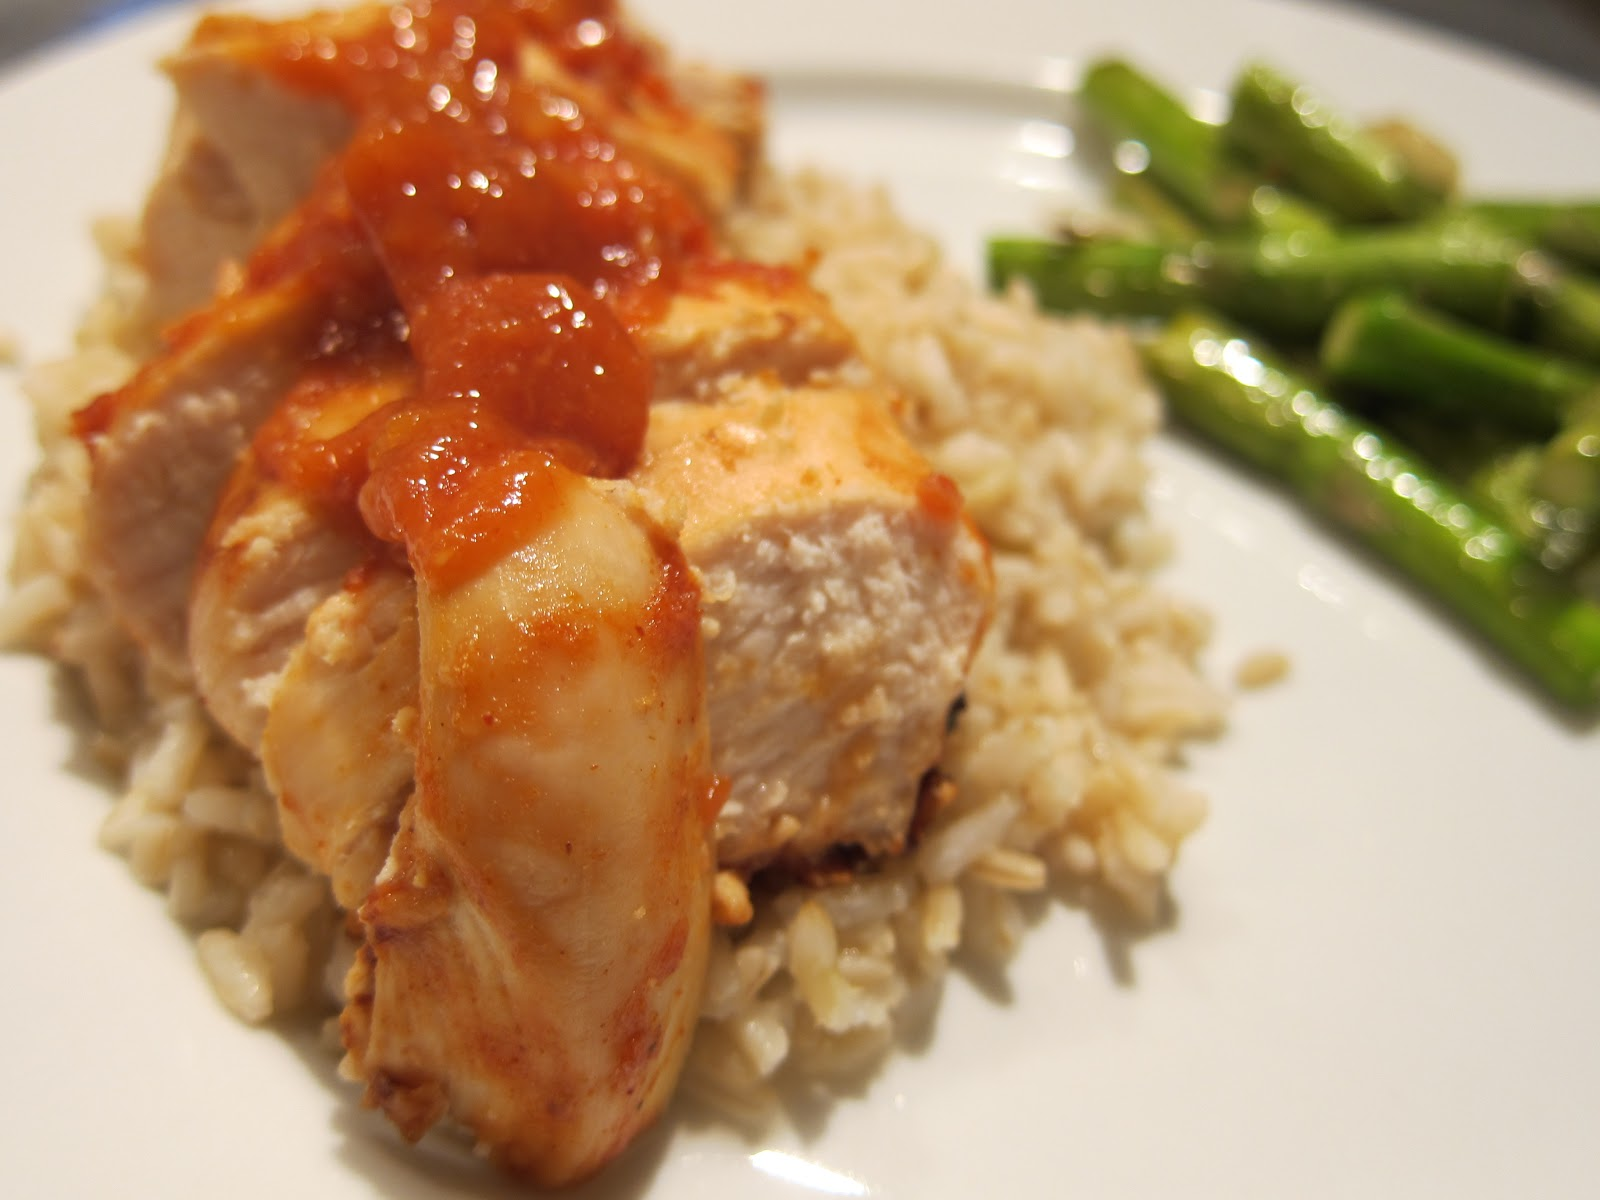 Belle's Baking: Grilled Chicken with Peach BBQ Sauce